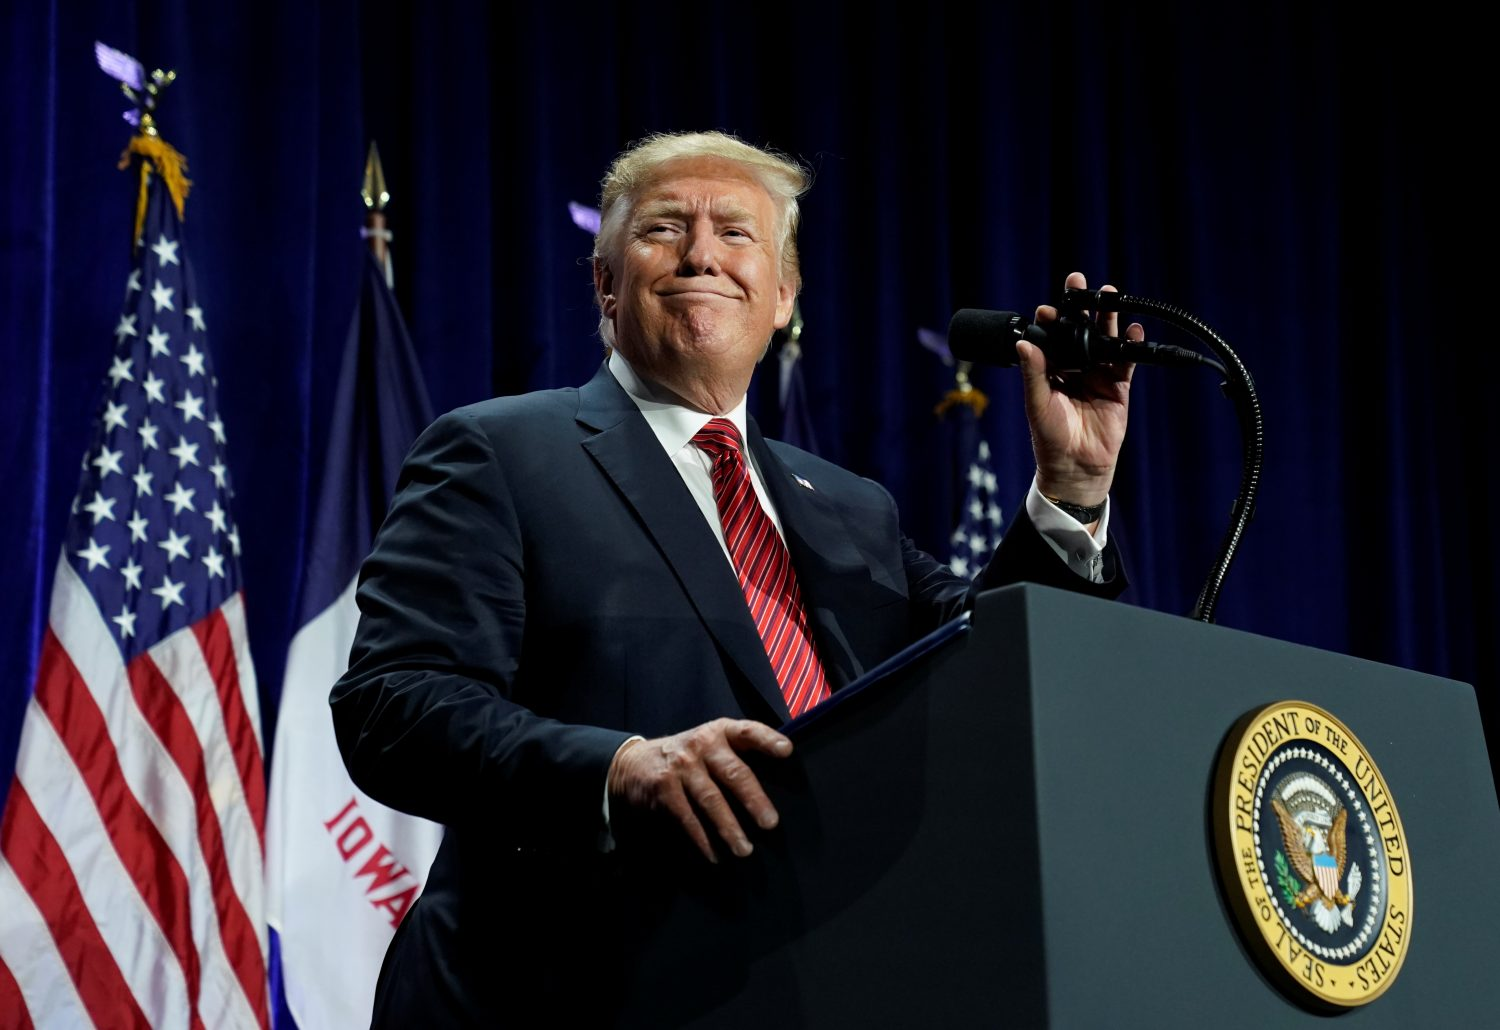 FILE PHOTO: U.S. President Donald Trump speaks at a fundraiser in Des Moines, Iowa, June 11, 2019. REUTERS/Kevin Lamarque